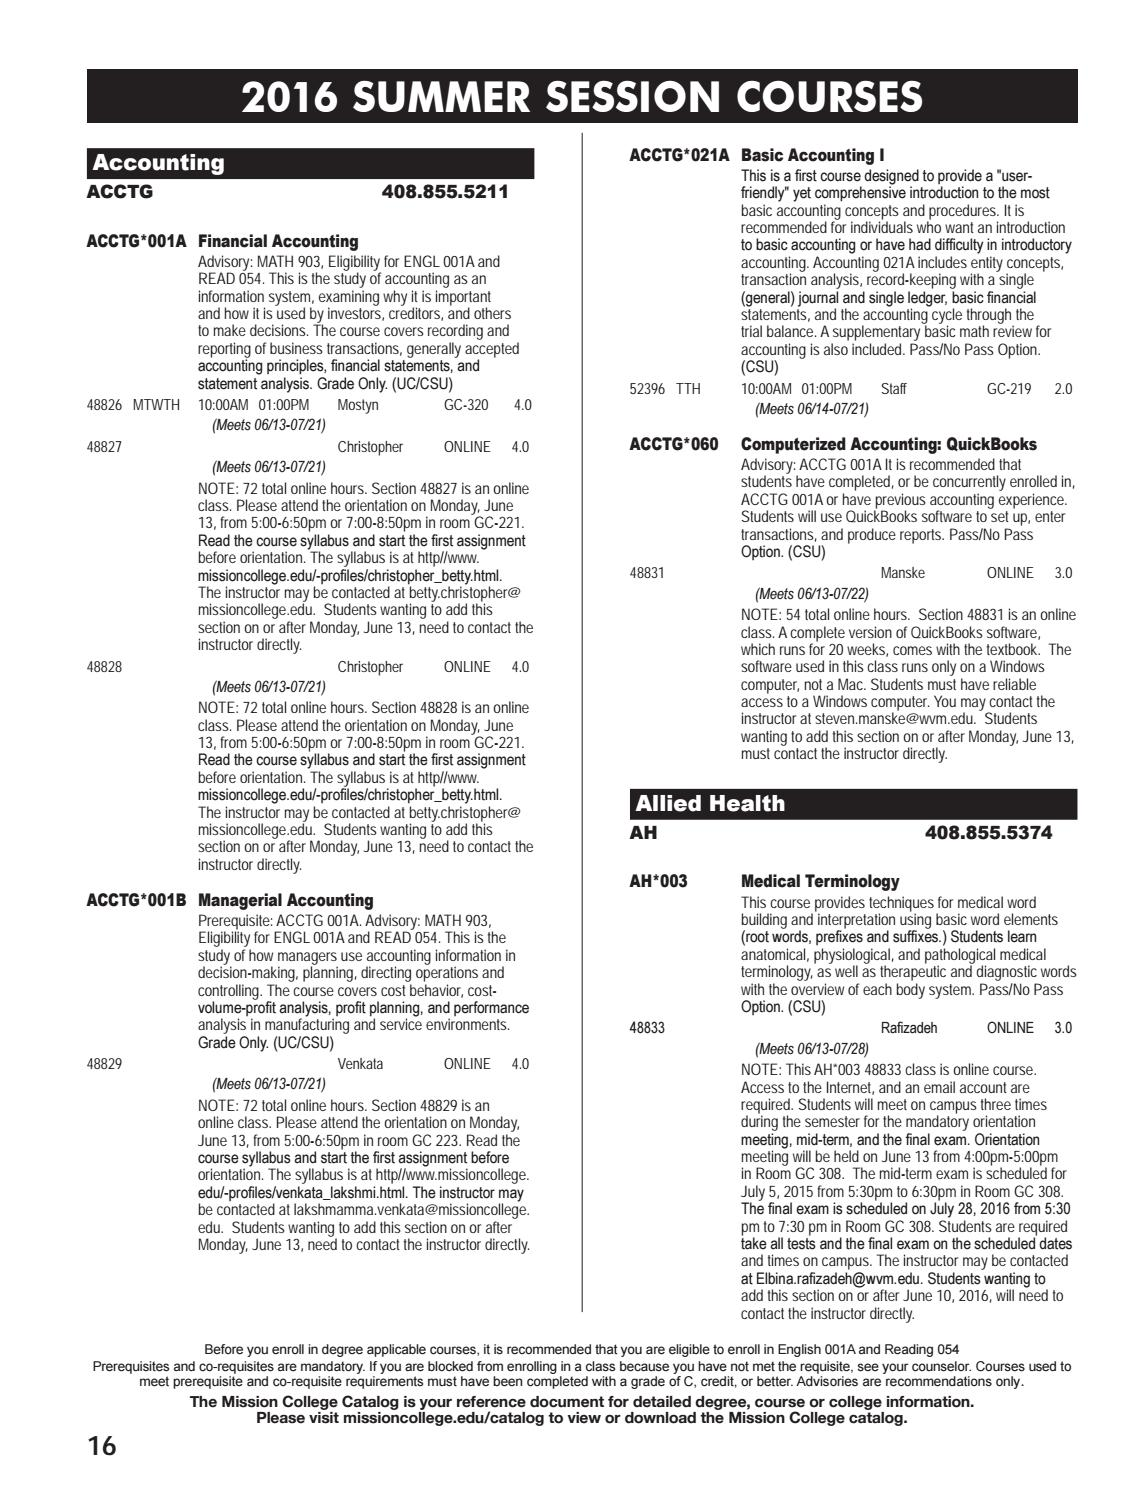 Mission College Summer & Fall 2016 Schedule by Mission